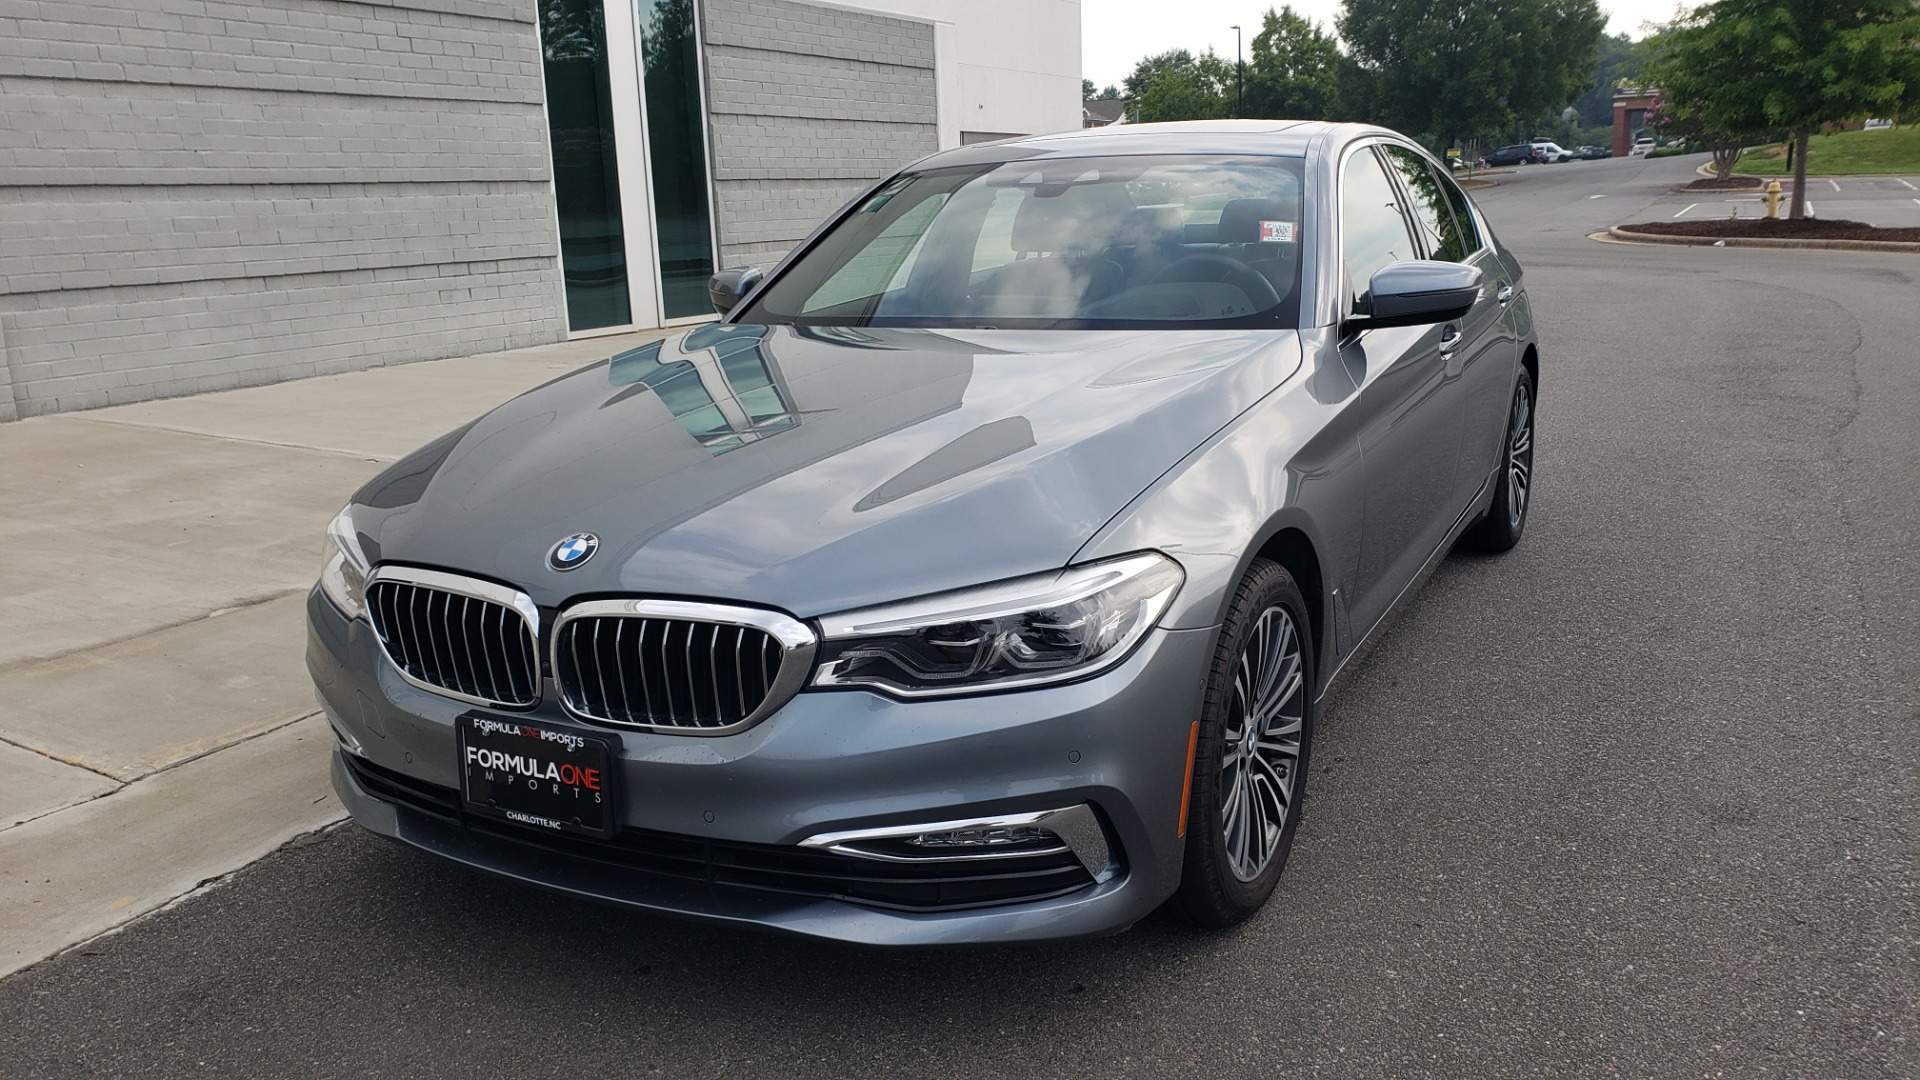 Used 2018 BMW 5 SERIES 540I XDRIVE PREMIUM / EXECUTIVE / LUXURY / H/K SND / REMOTE CONTROL PARKING for sale $40,995 at Formula Imports in Charlotte NC 28227 3